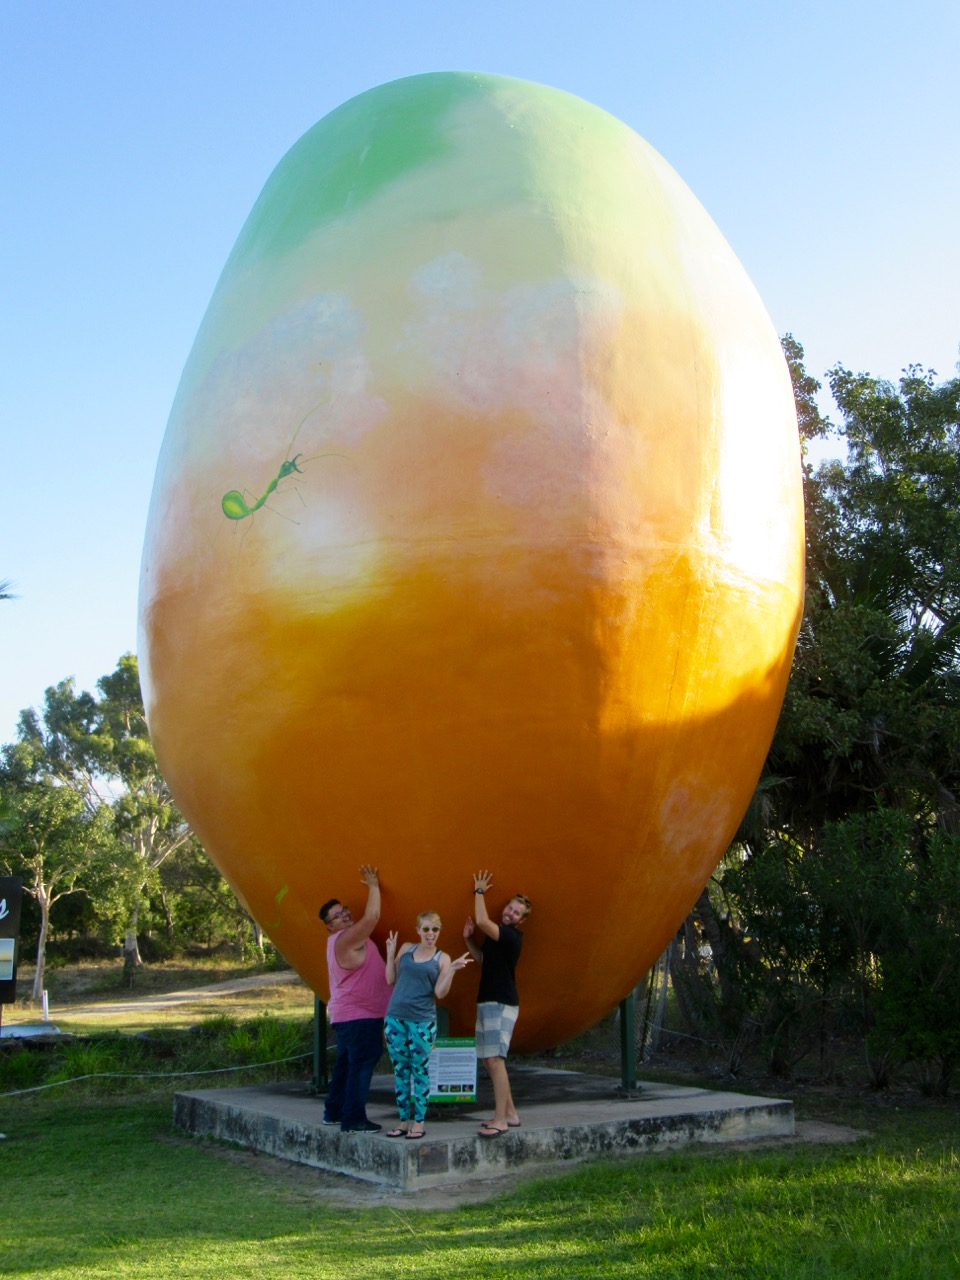 Jacob, Patricia and Matthew holding up the giant mango.